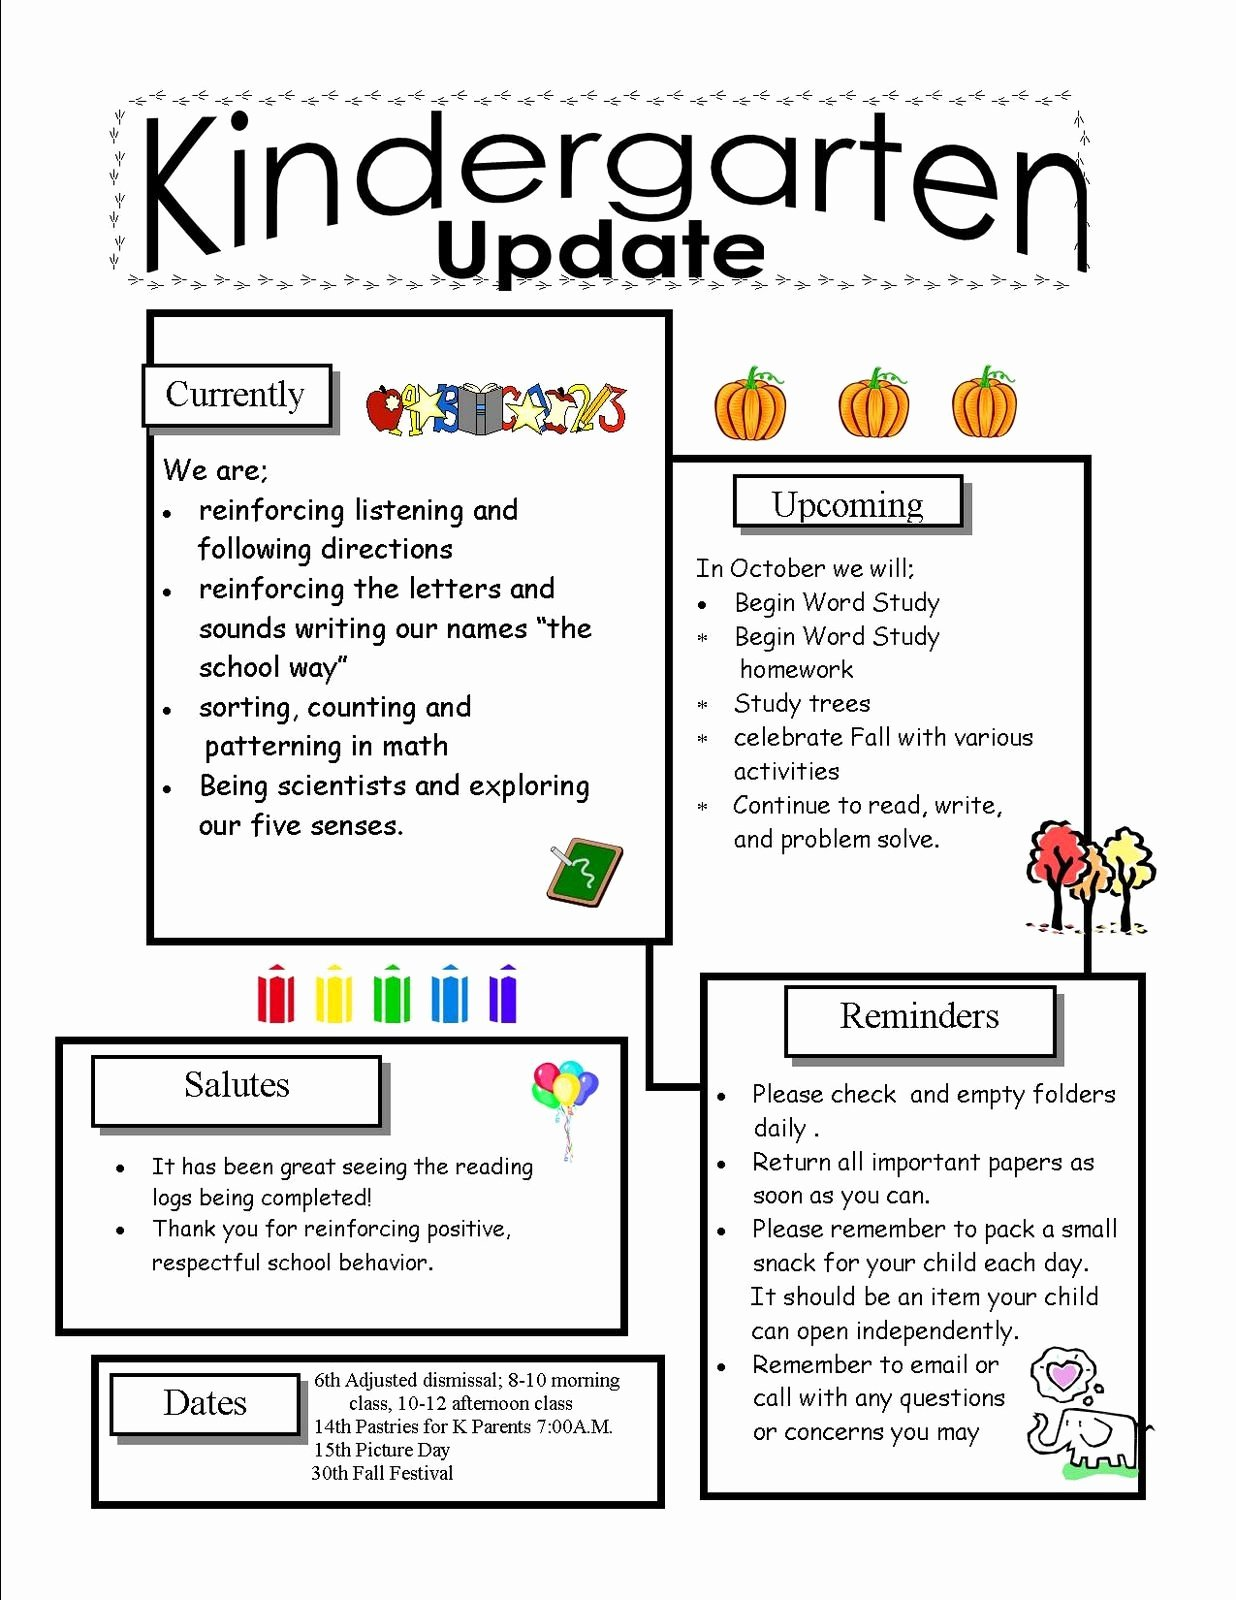 Free Kindergarten Newsletter Template Best Of Kindergarten Newsletter Templates for Free